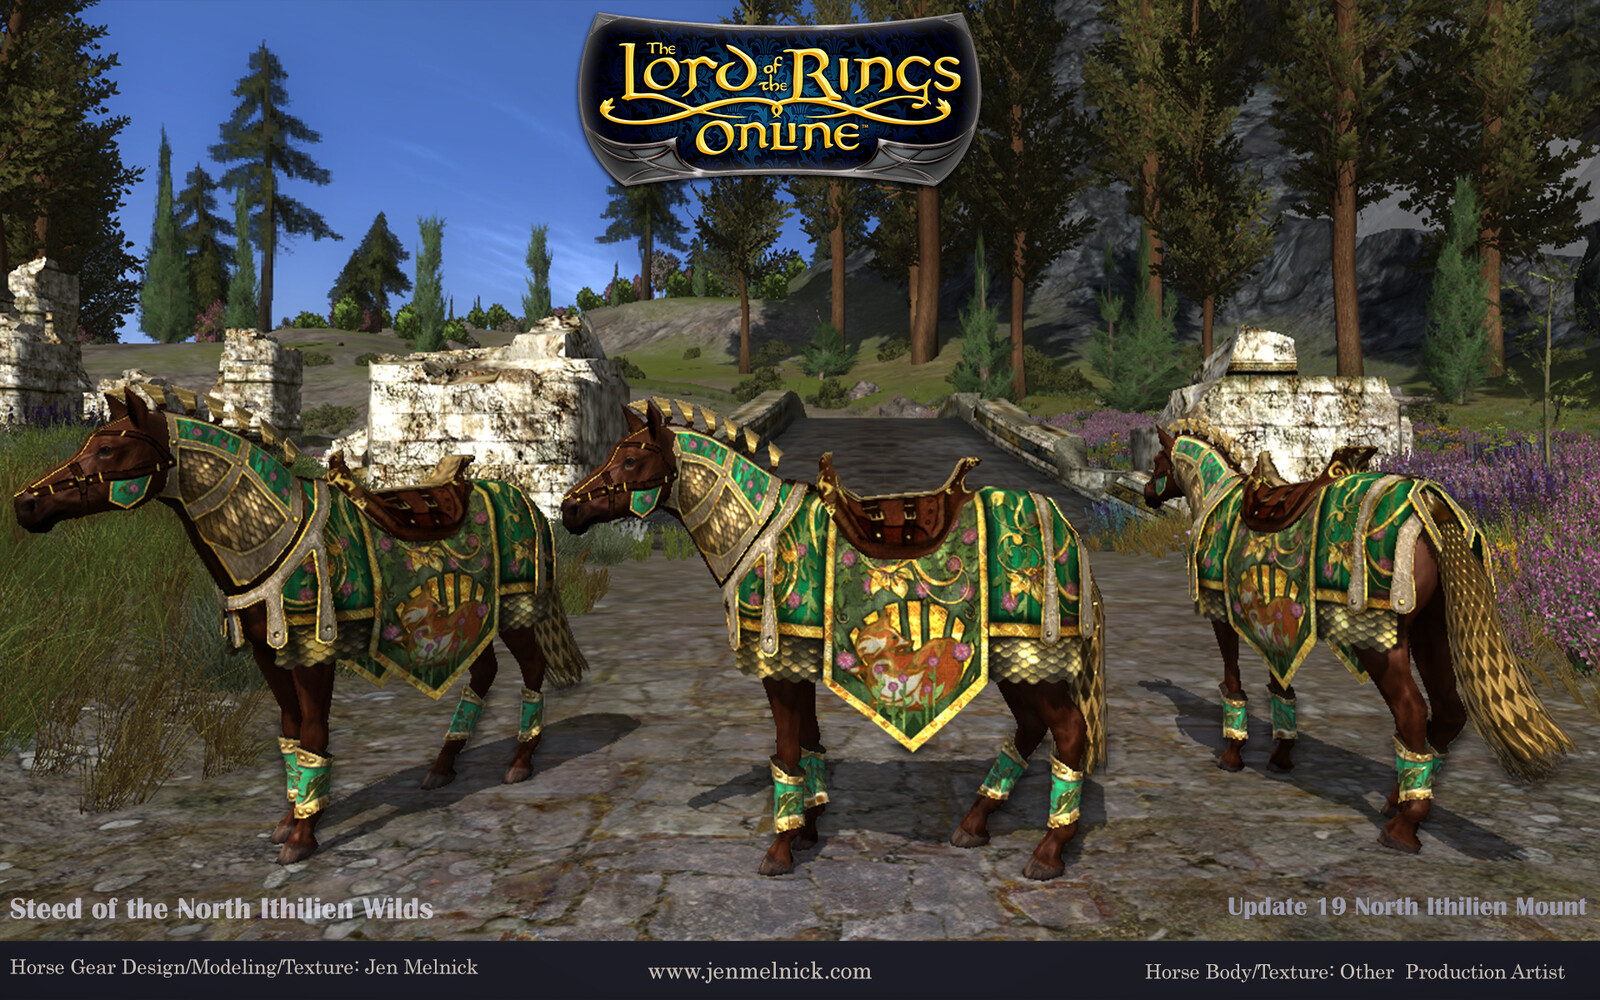 Update 19 North Ithilien Deed Mount Steed of the North Ithilien Wilds In-Game Screenshot Day